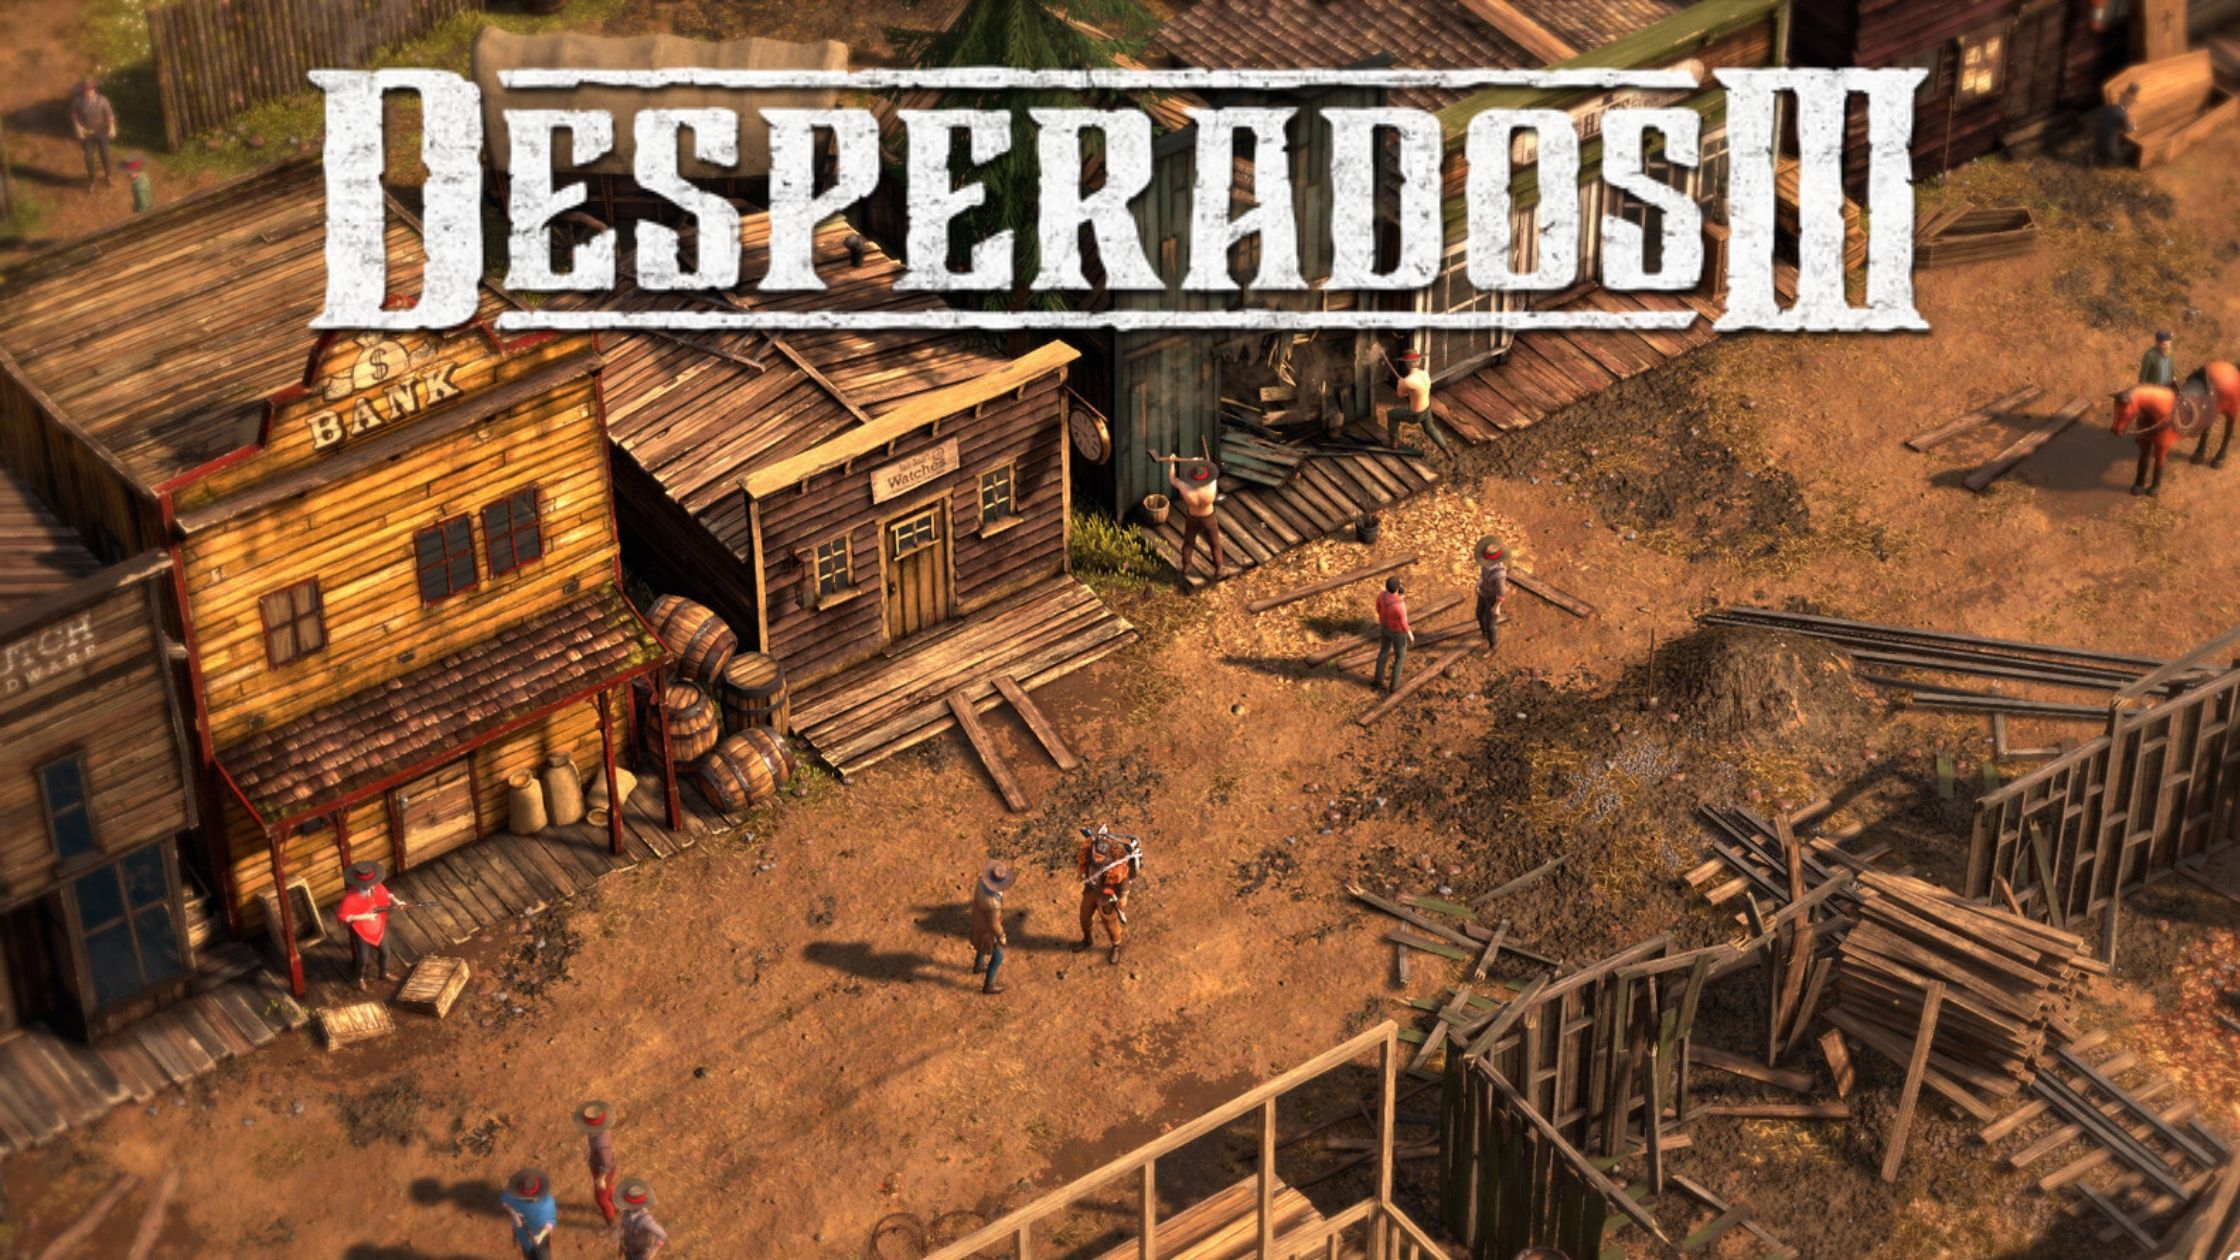 Download Desperados III For Free on Windows PC: Here's How